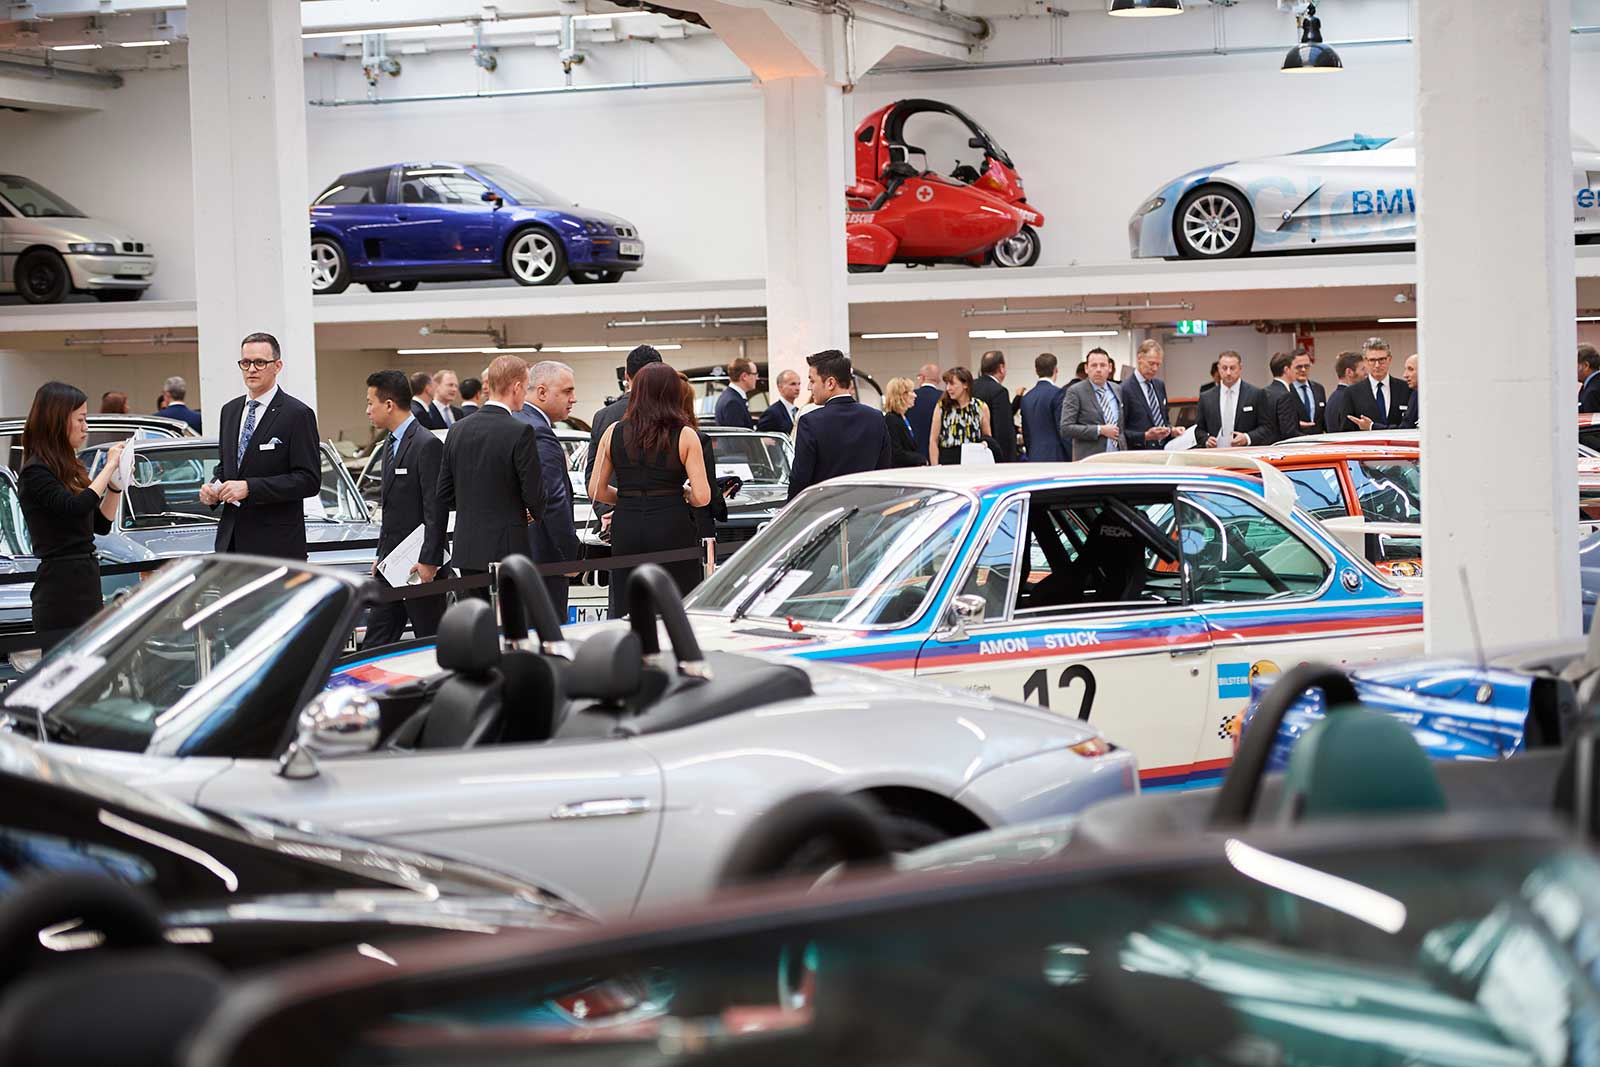 Worksheet. The 36 Best BMW Dealers in the World Are  BimmerFile